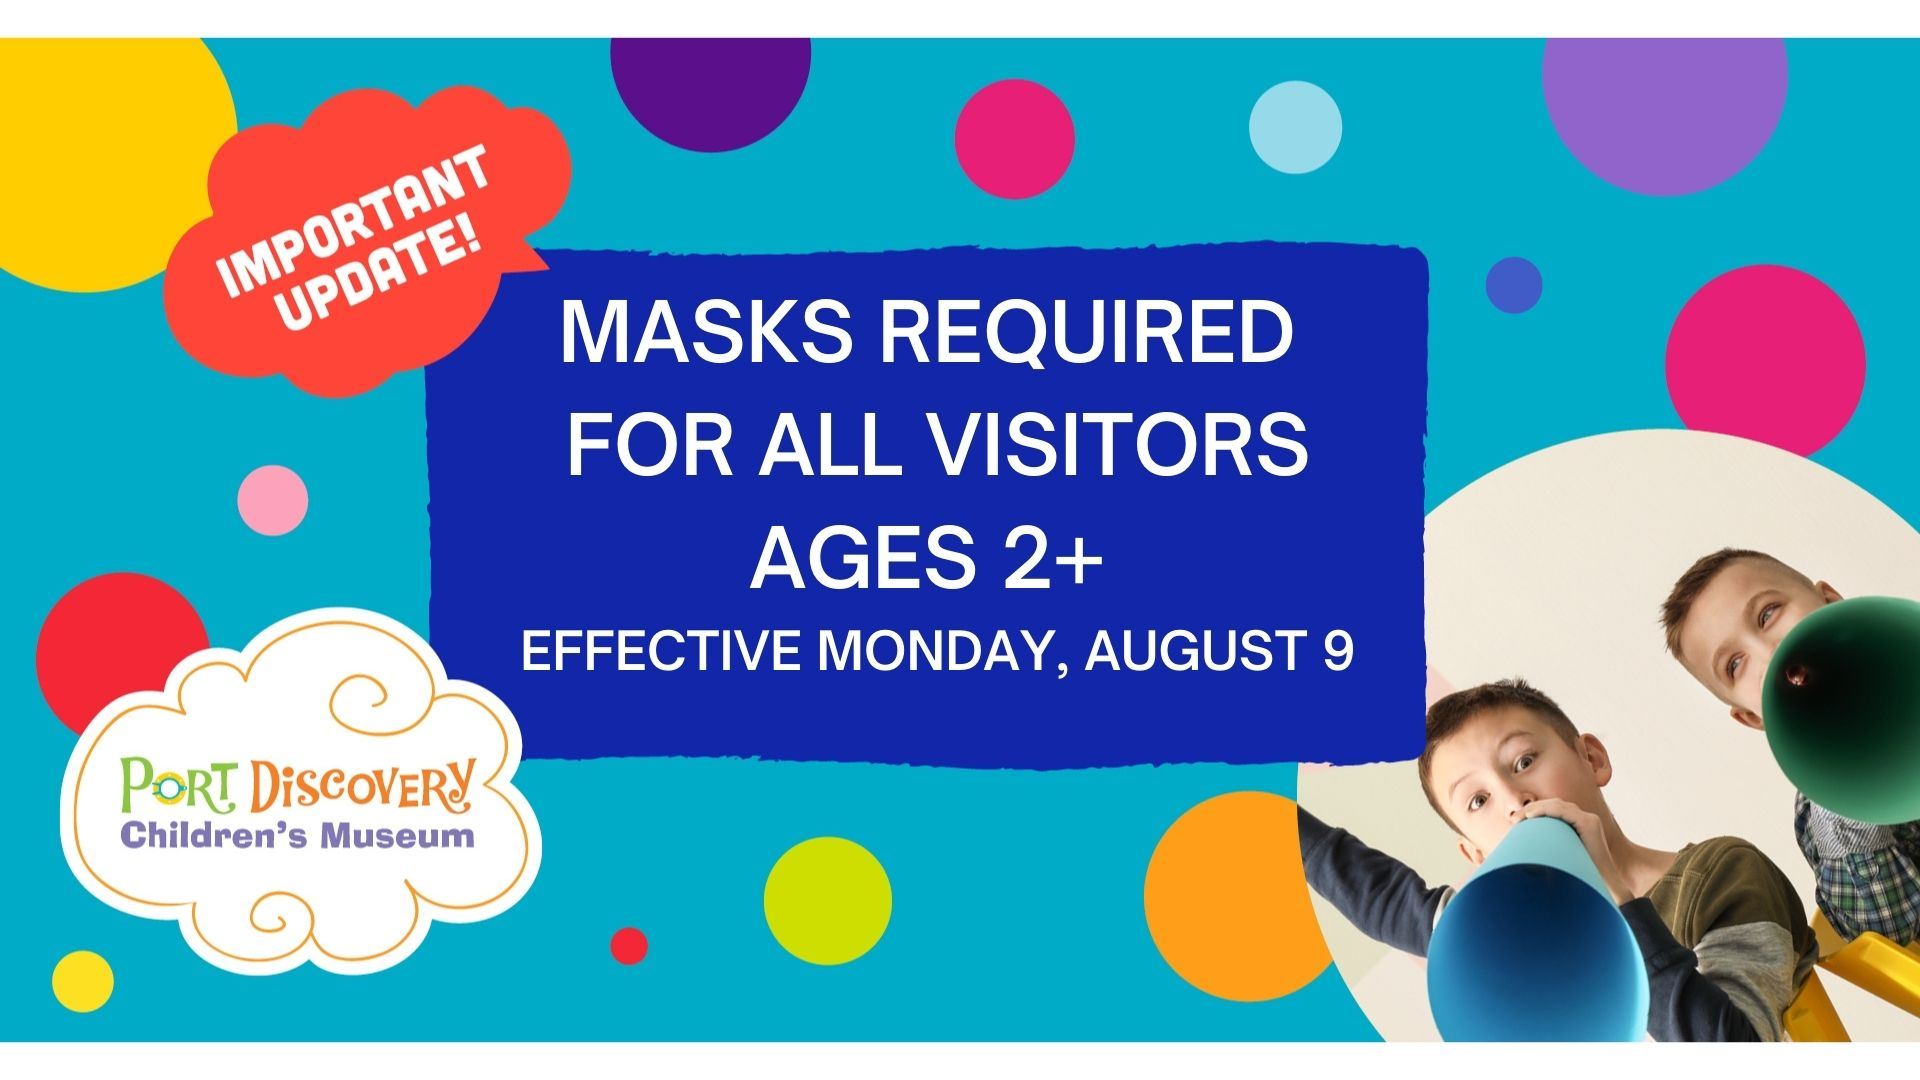 Masks Required for All Visitors Ages 2+ Effective Monday, August 9